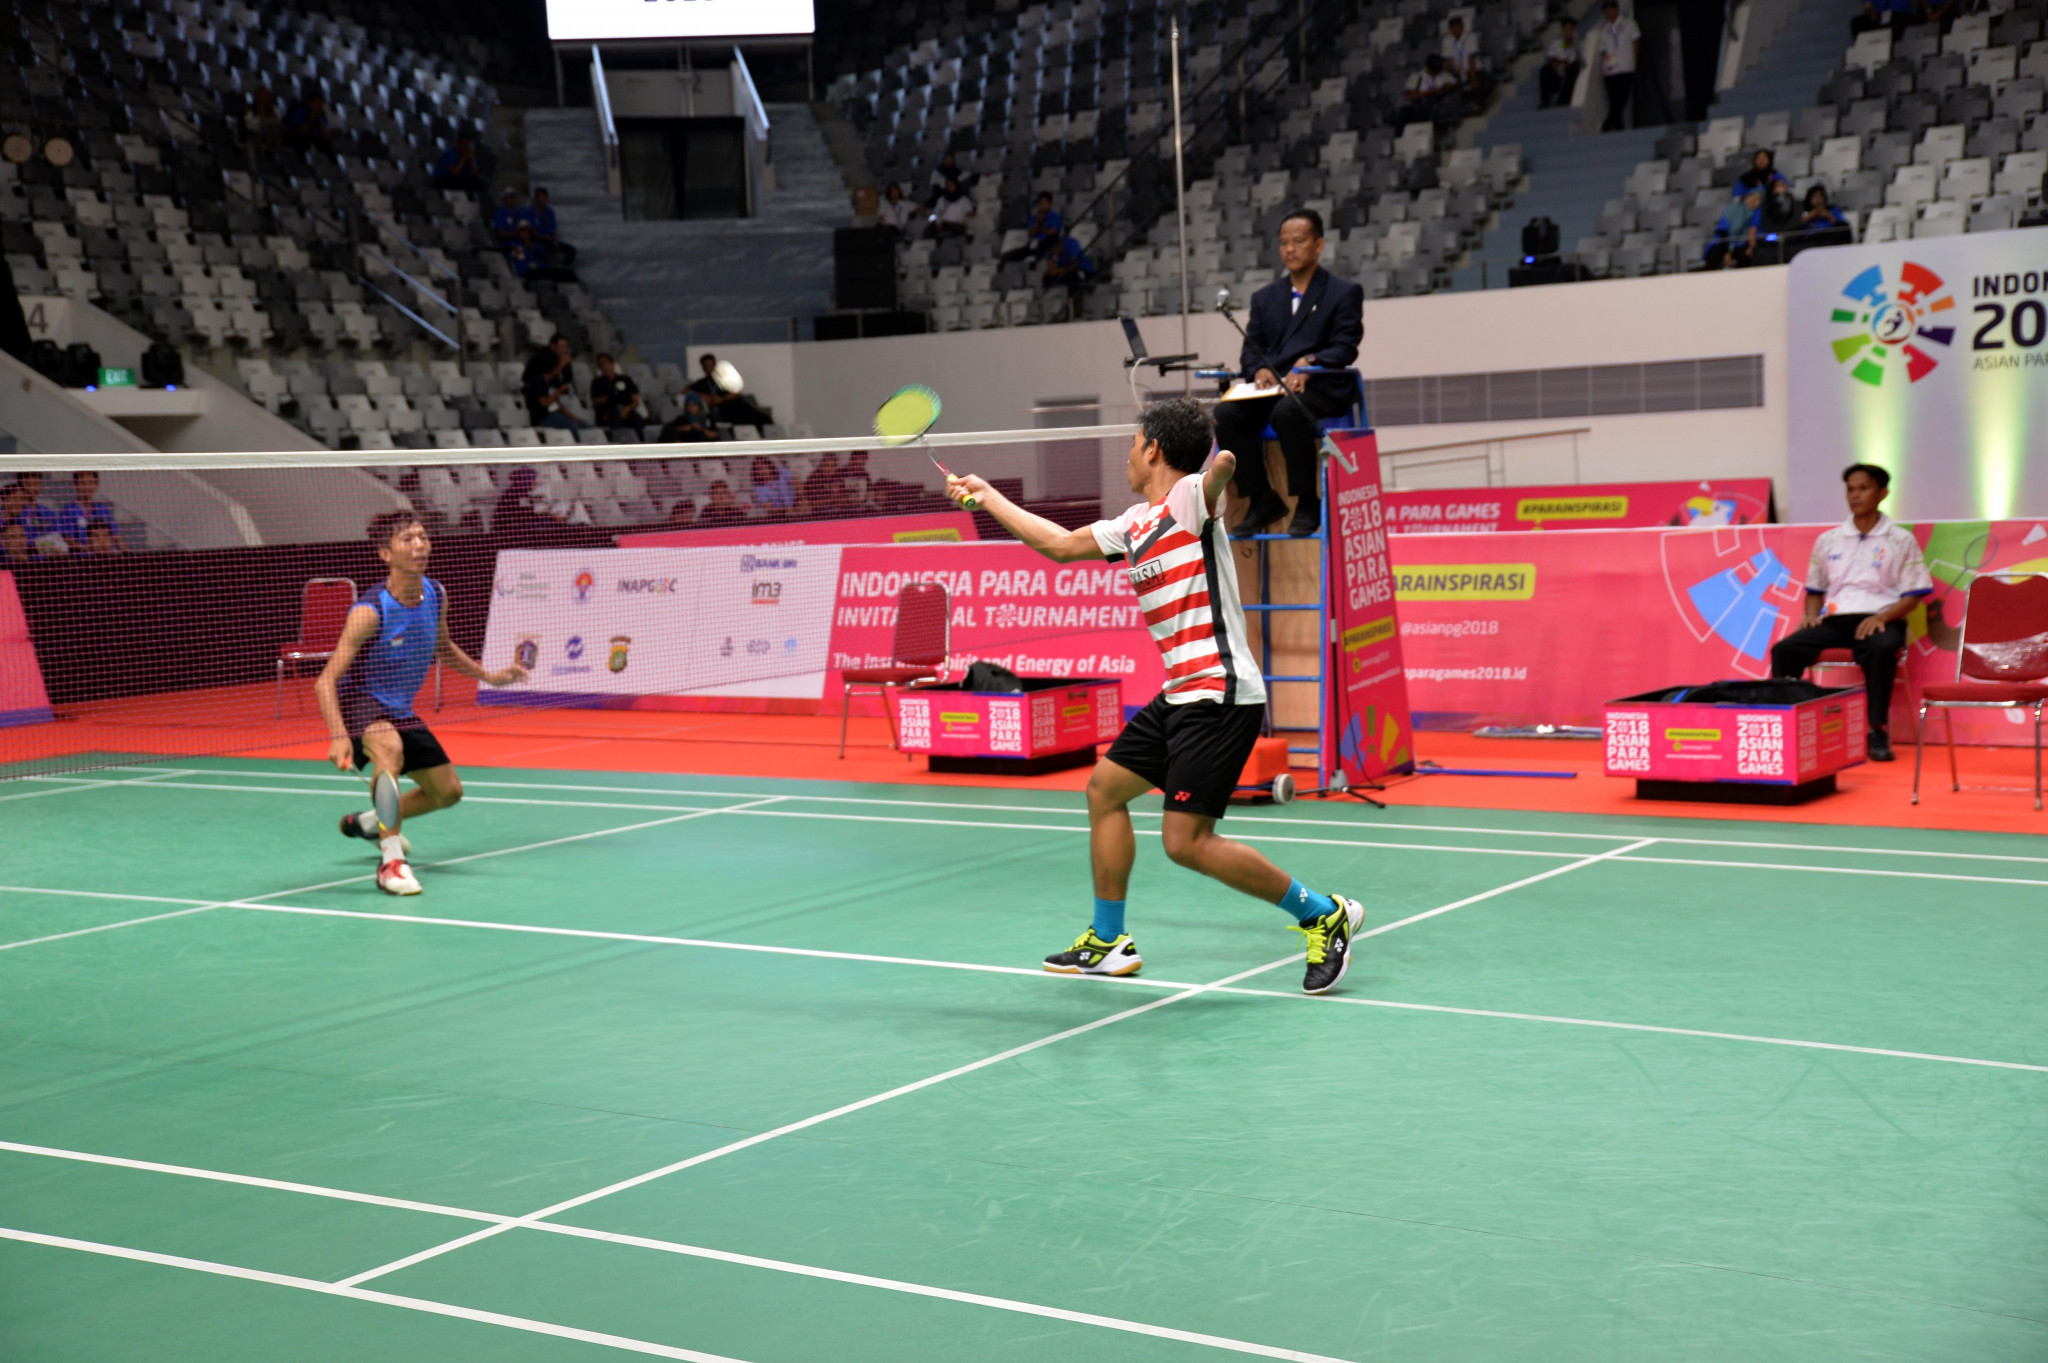 As part of the 100-days-to-go celebration, the test events for the 2018 Asian Para Games begun with a badminton competition ©INAPGOC and APC